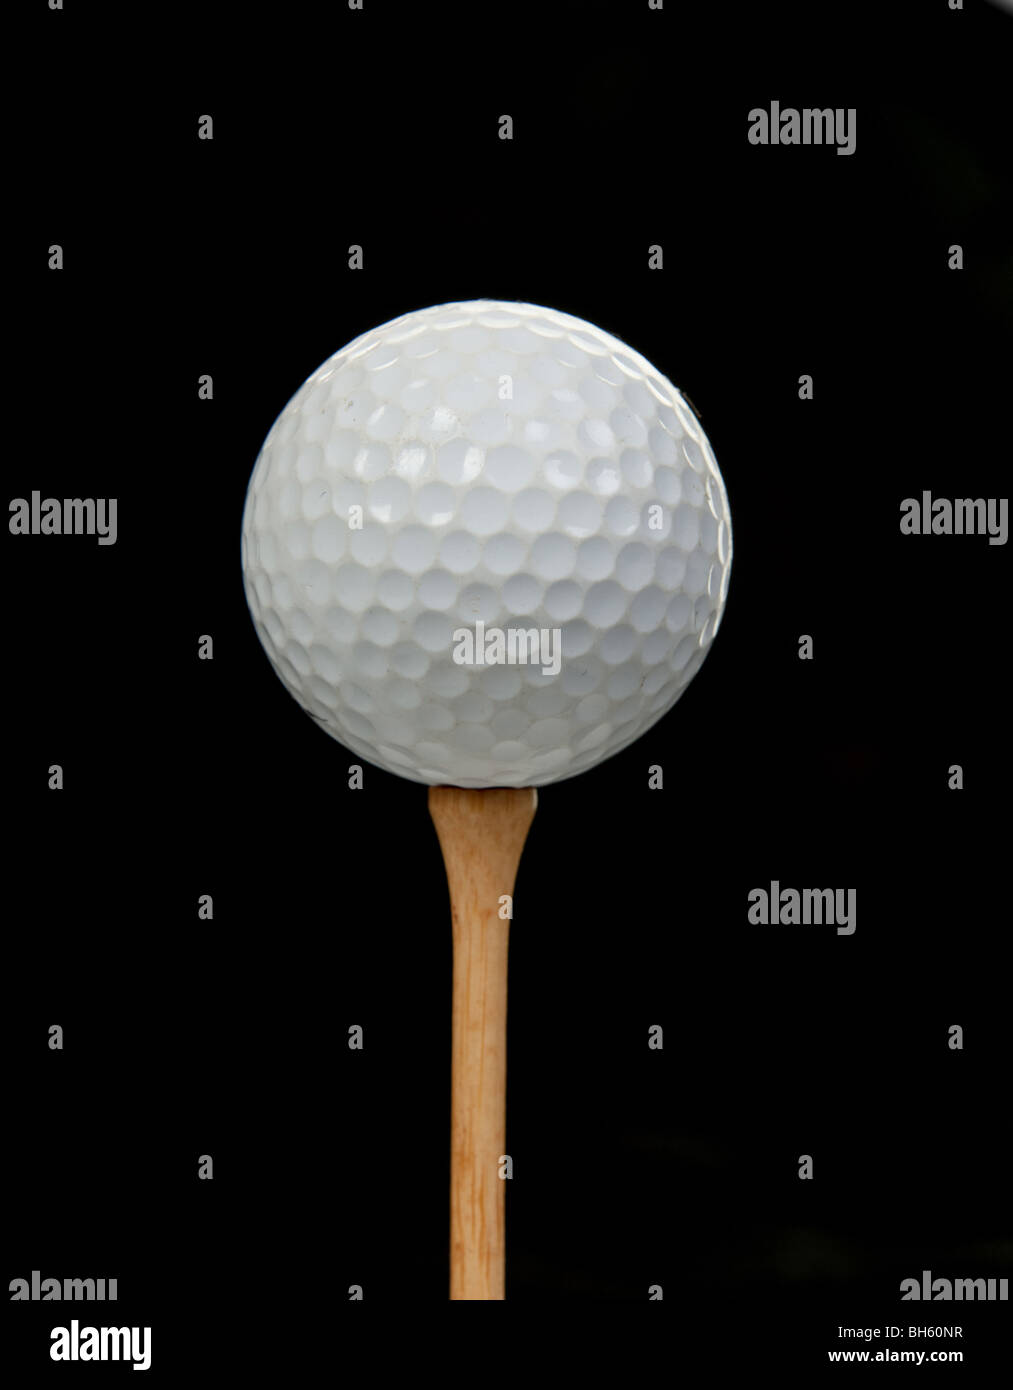 image of a golf ball on tee on black background - Stock Image